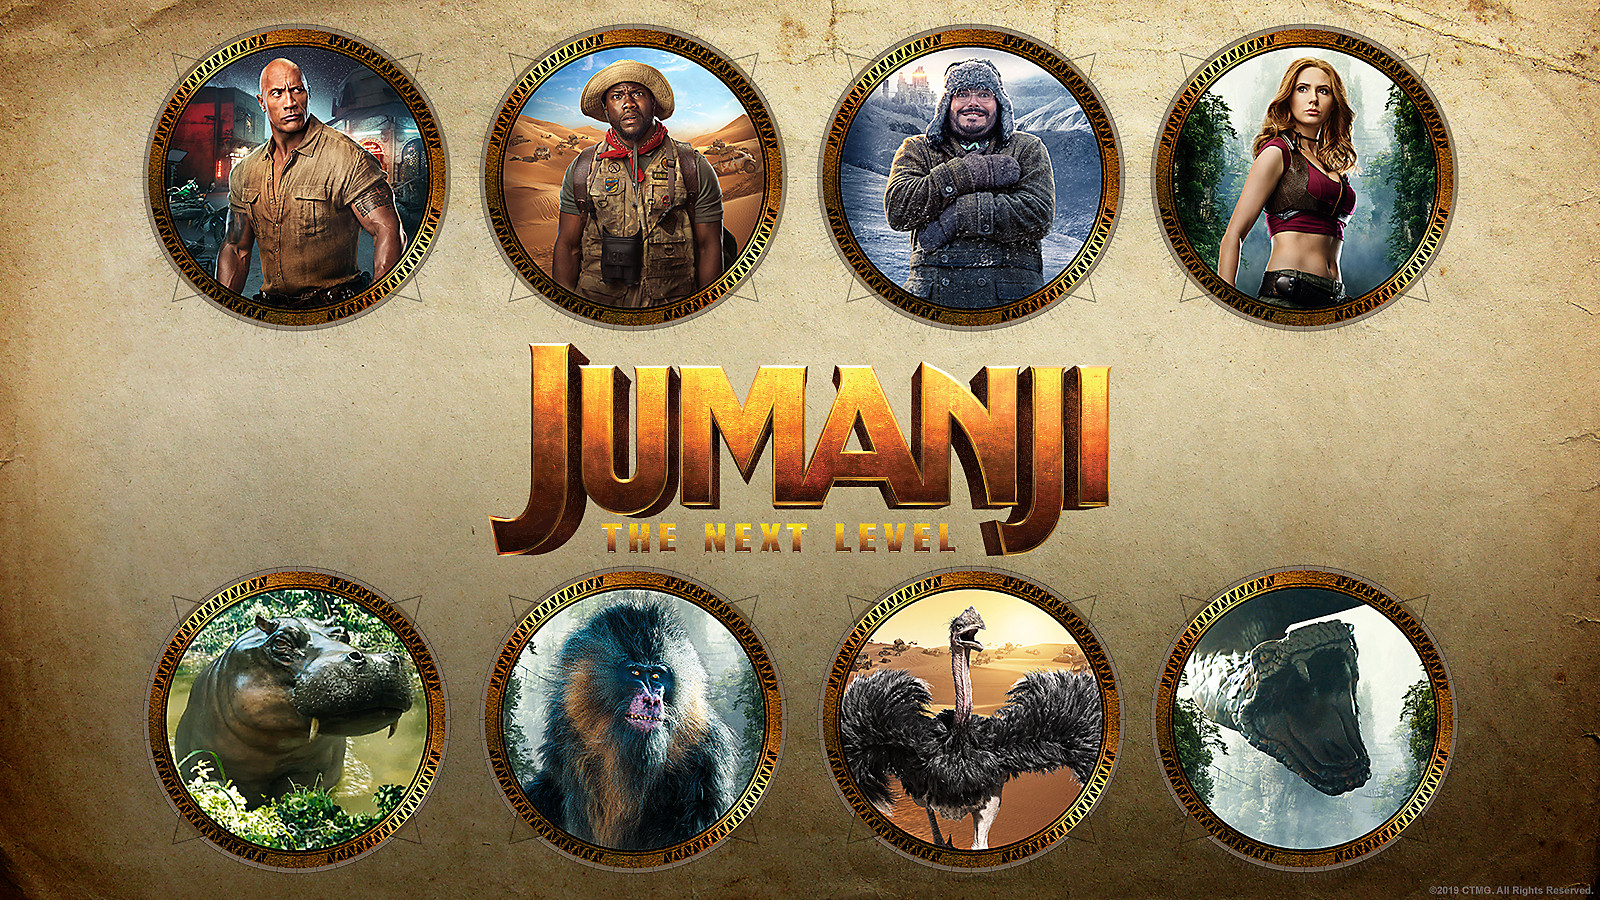 Jumanji: The Next Level Avatars Image